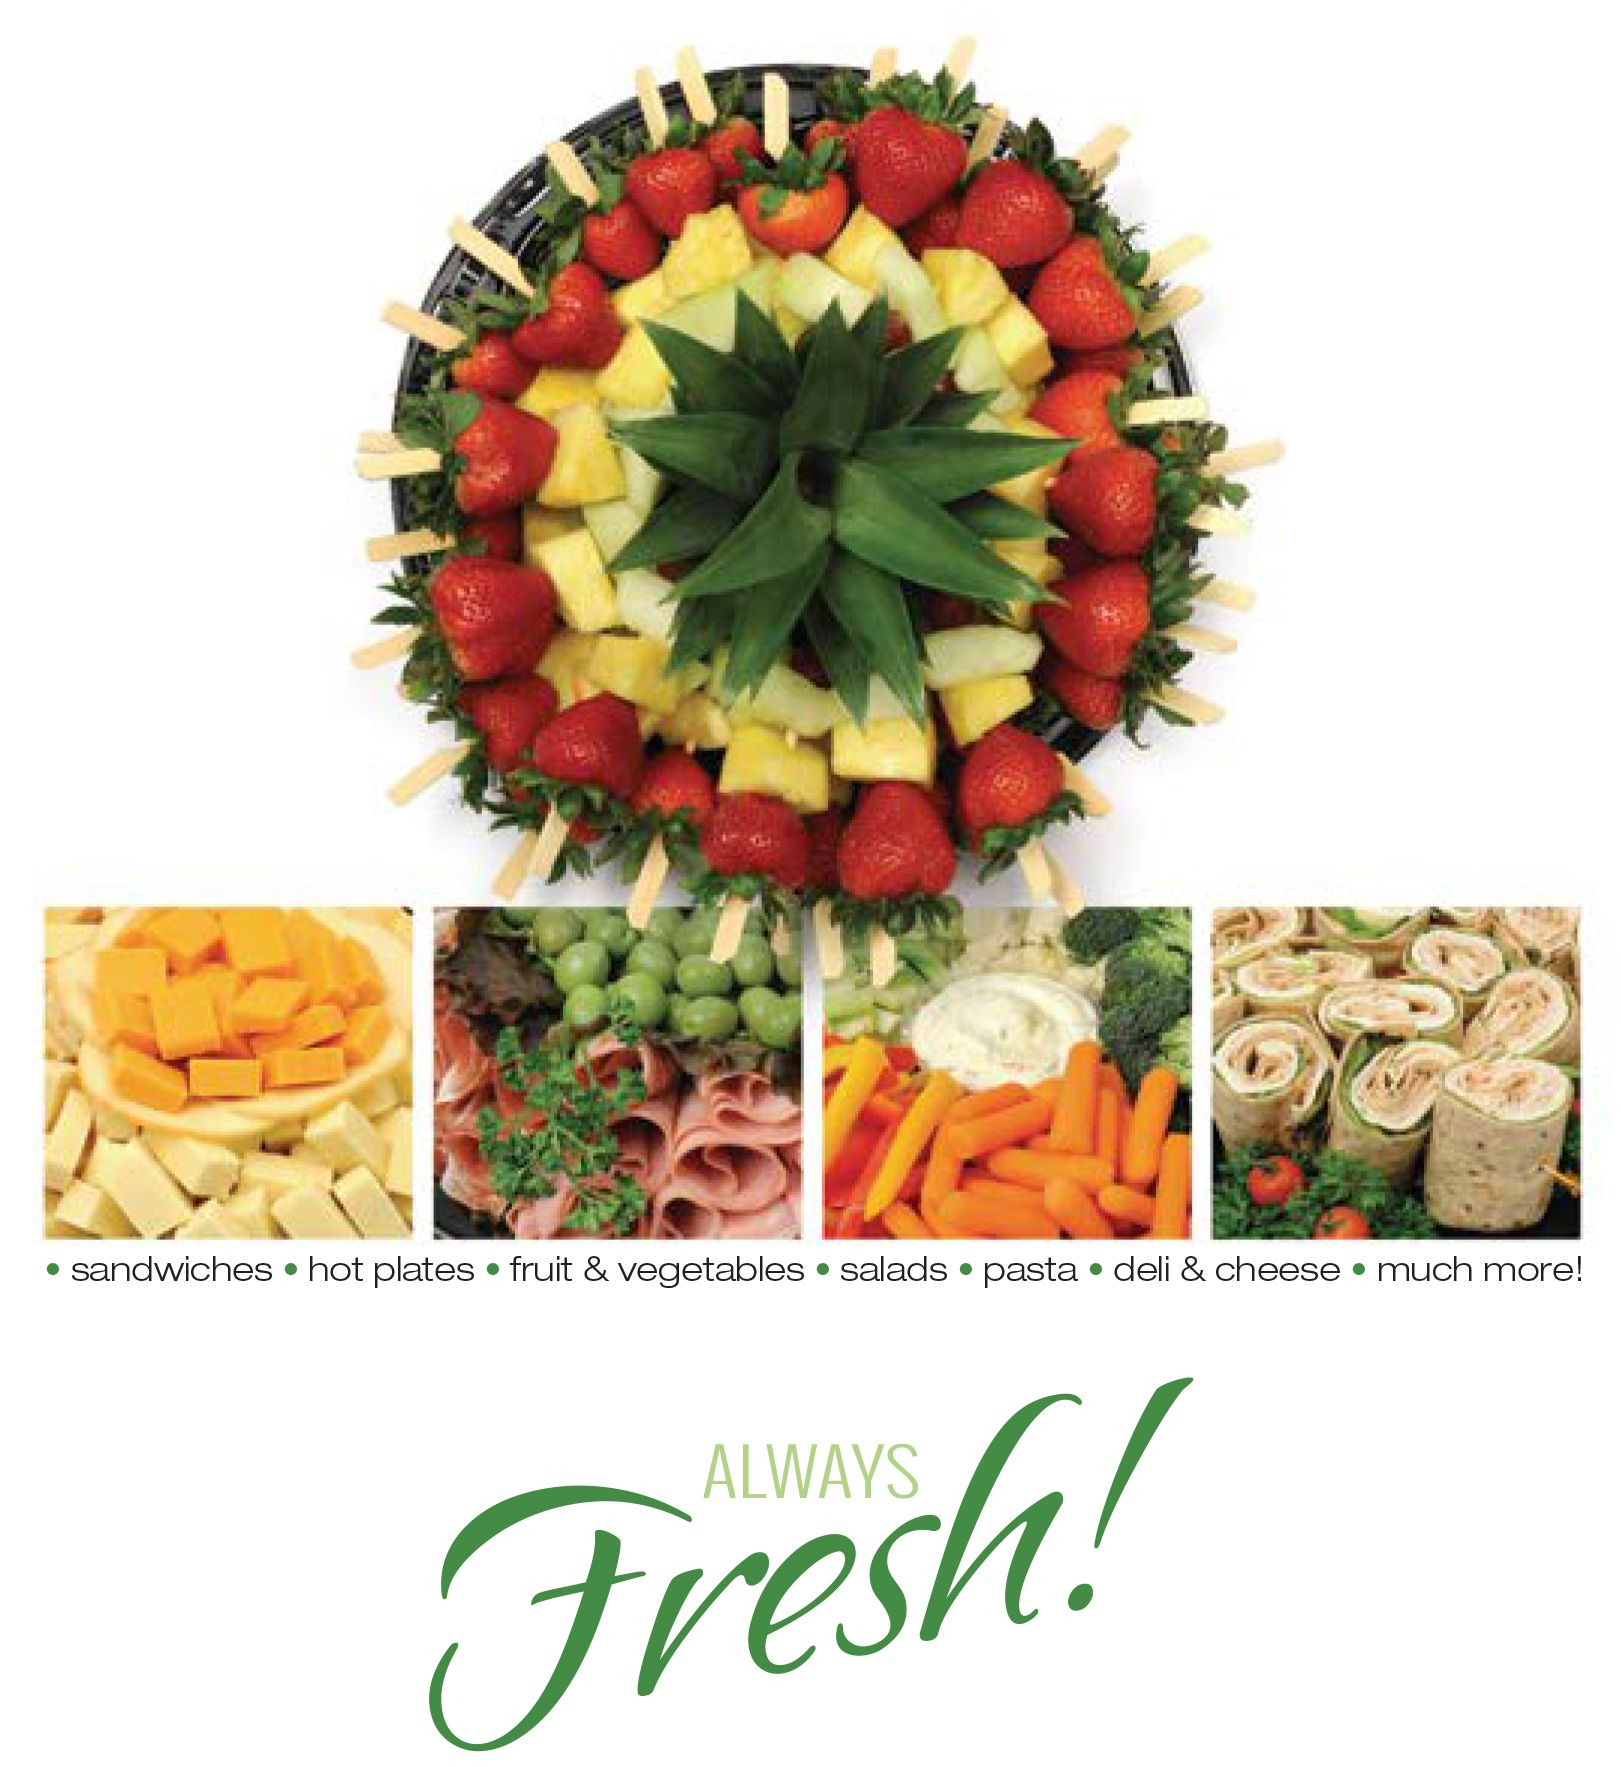 Hot plates, sandwiches, salads, pasta, cheese and deli trays, deserts. Always fresh.